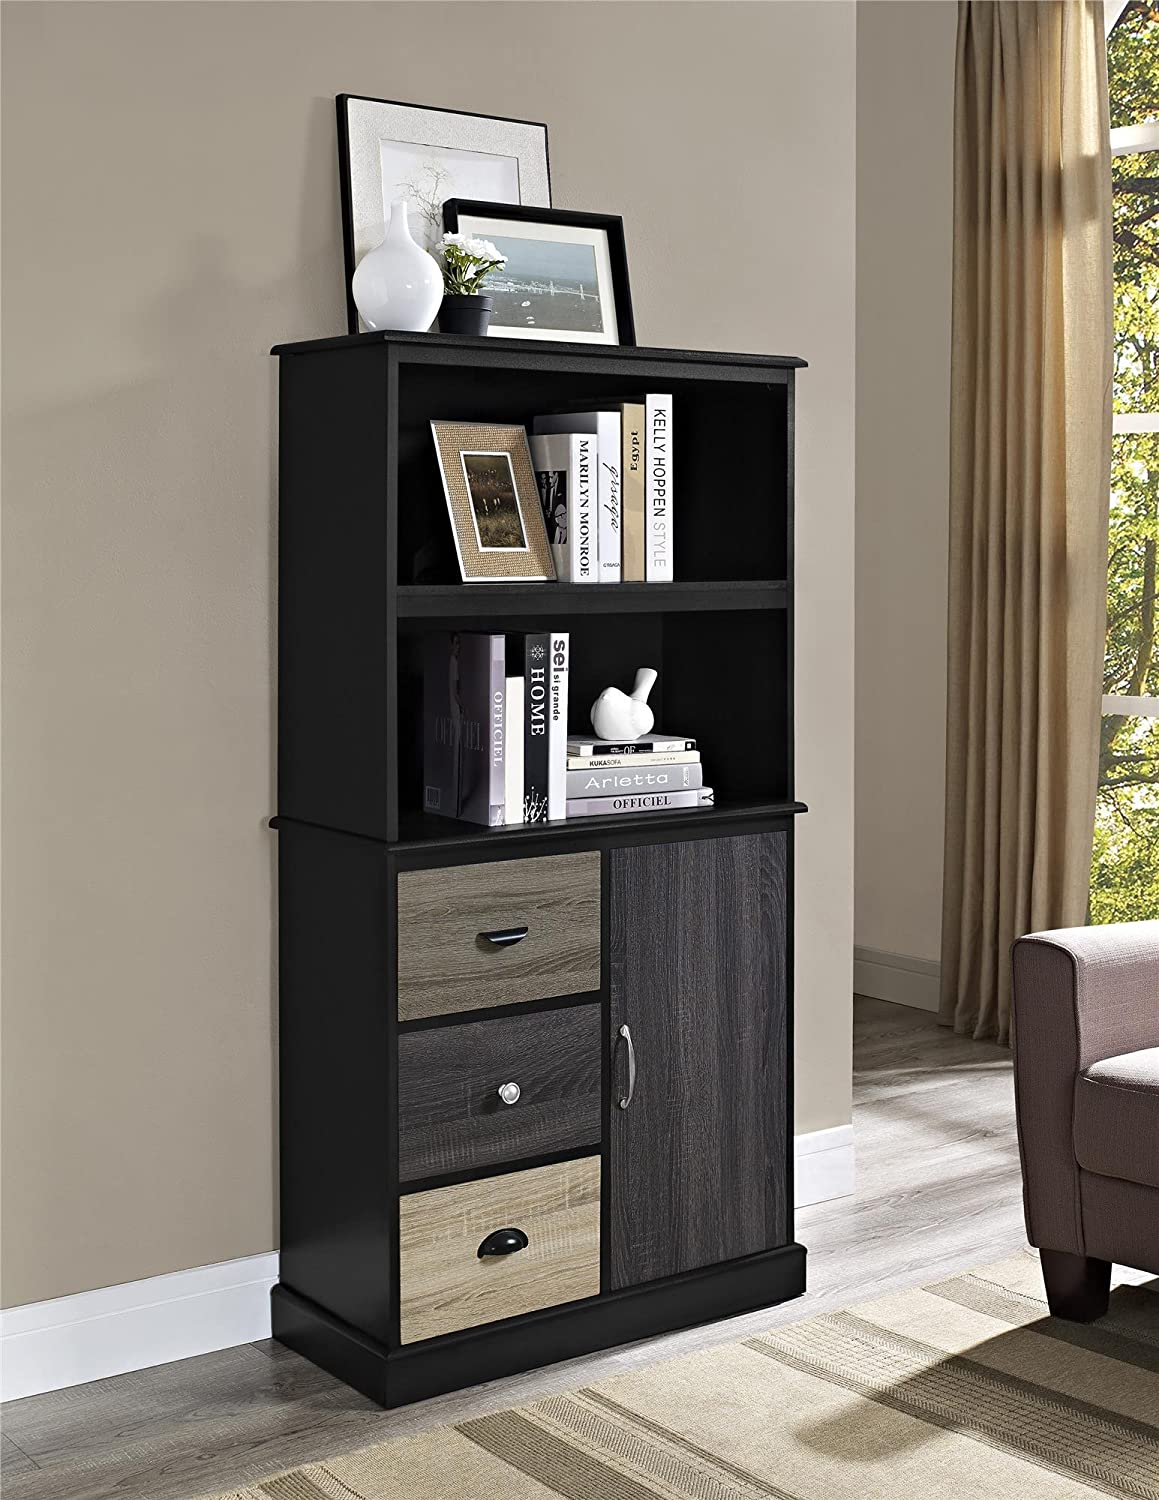 Perfect Amazon.com: Ameriwood Home Blackburn Storage Bookcase With Multicolored  Door And Drawer Fronts (Black): Kitchen U0026 Dining